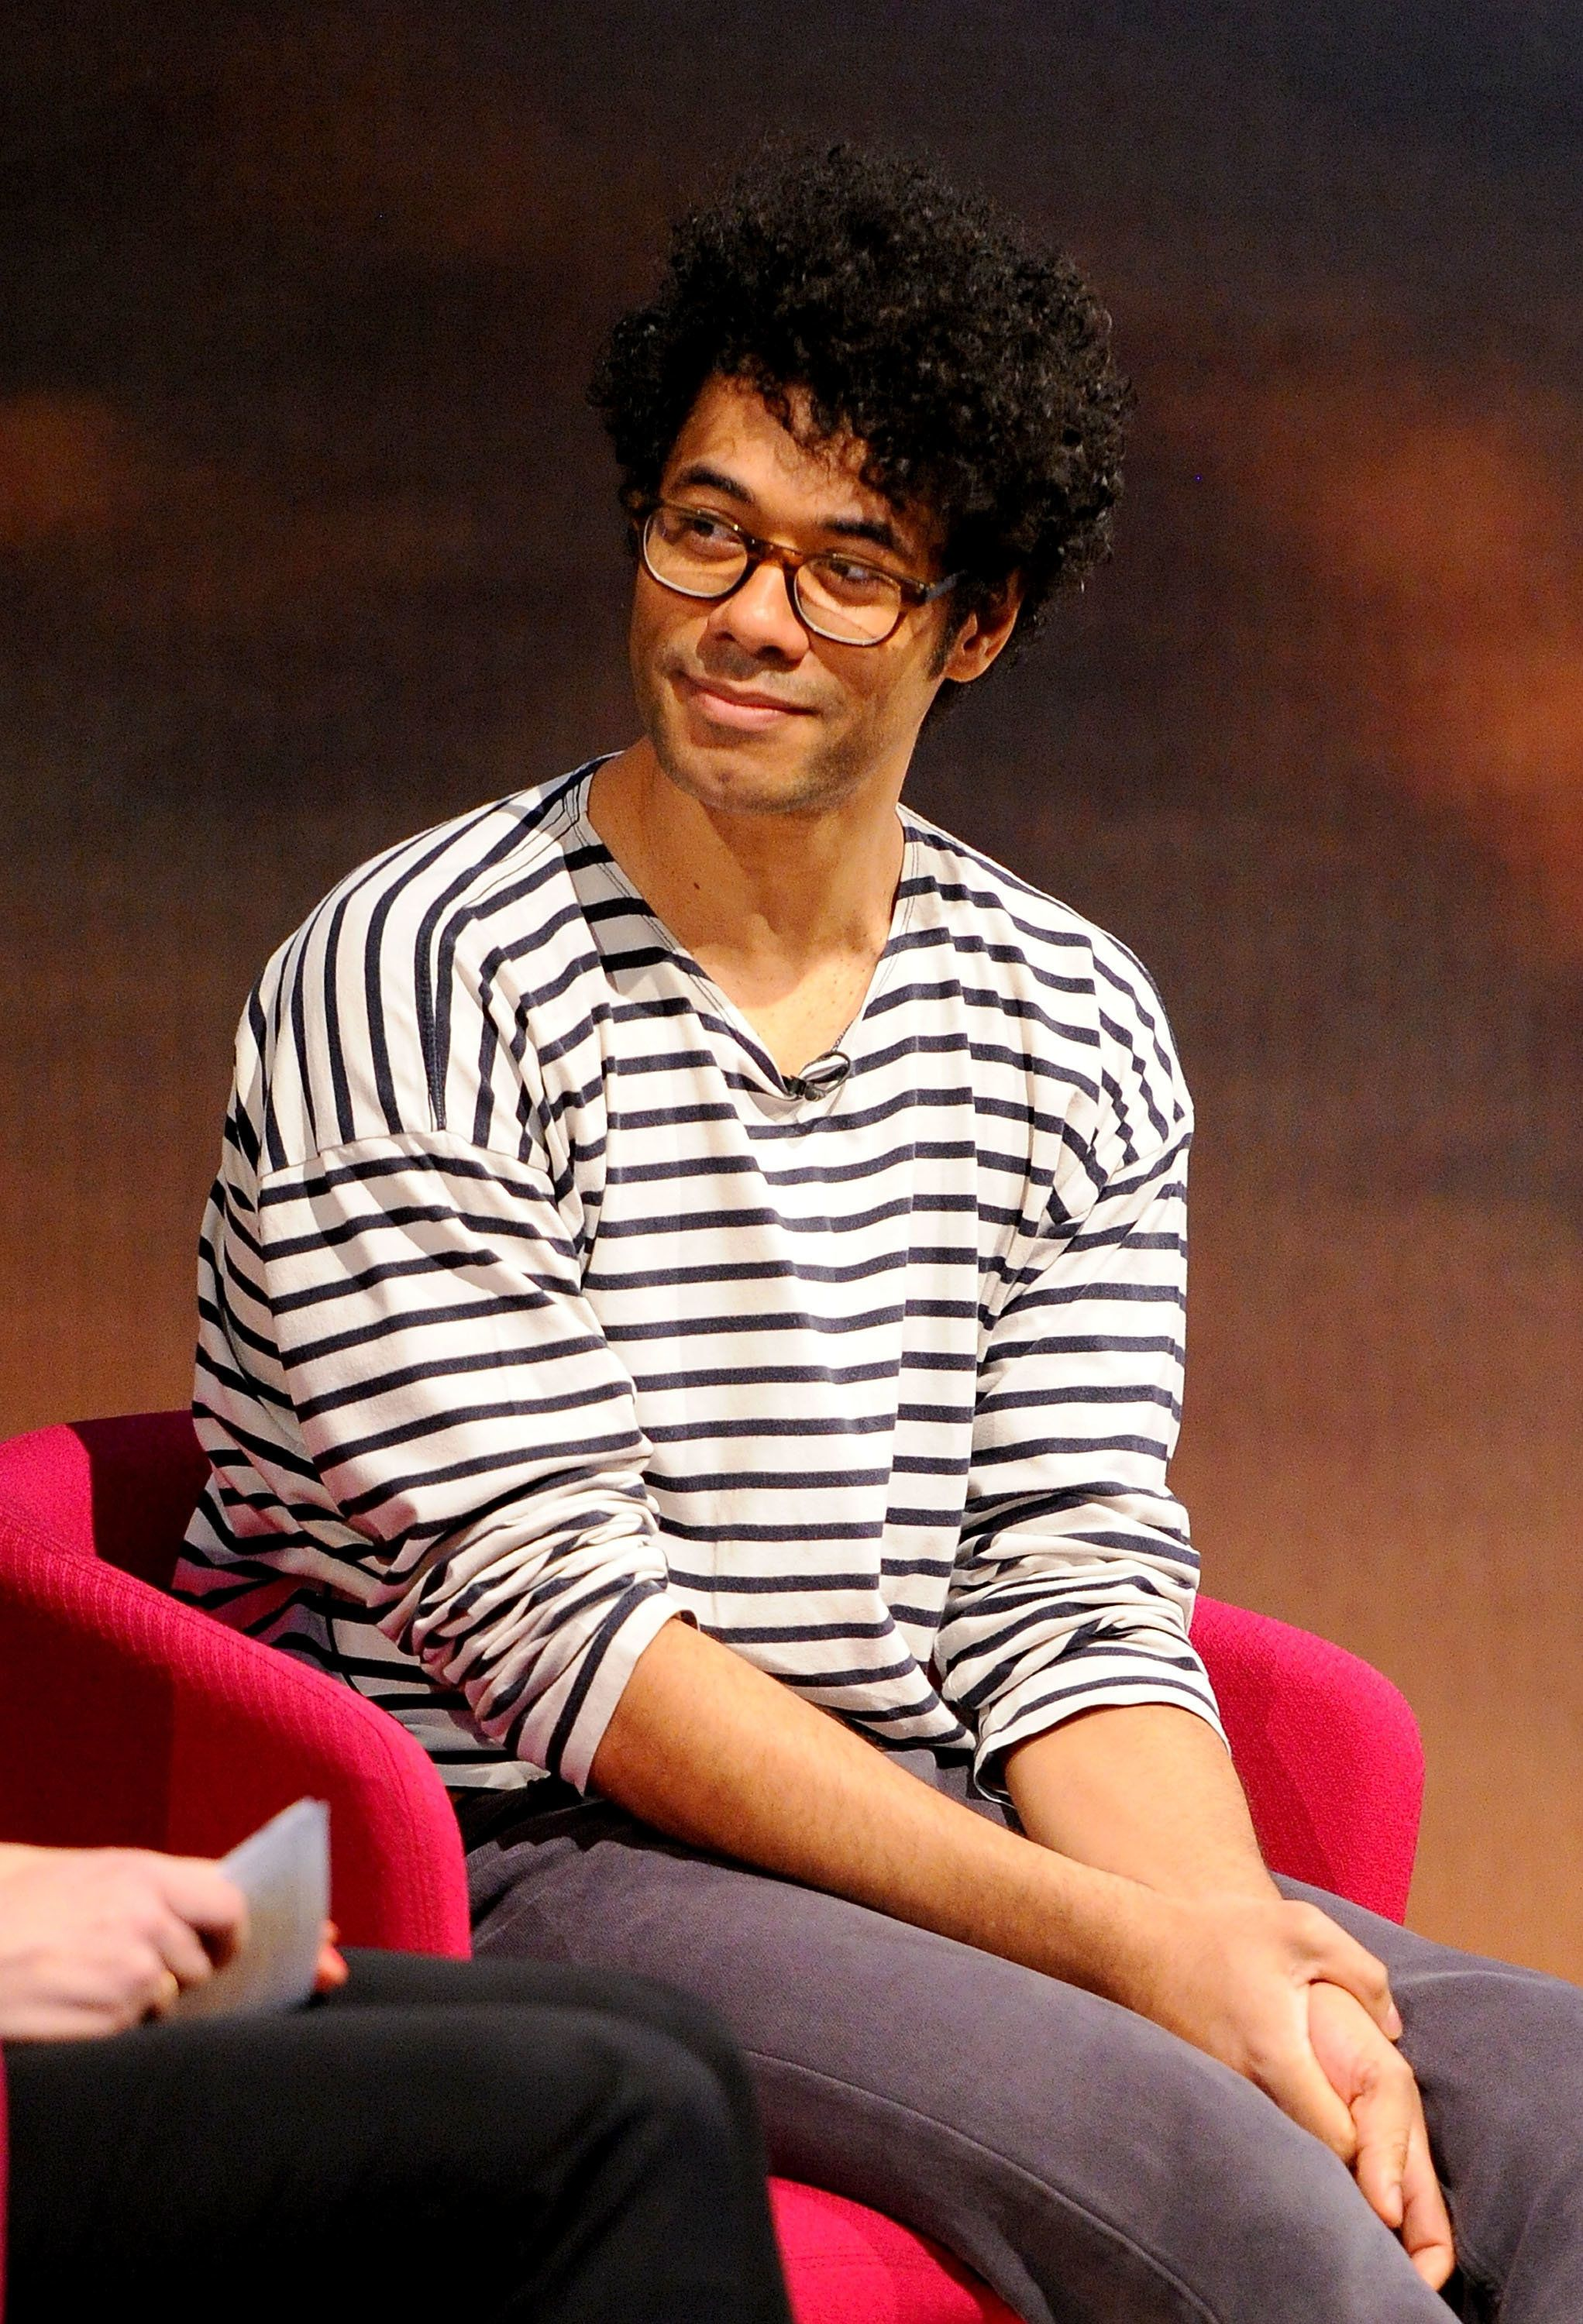 Channel 4 Teases New Snaps Of Richard Ayoade In 'The Crystal Maze'